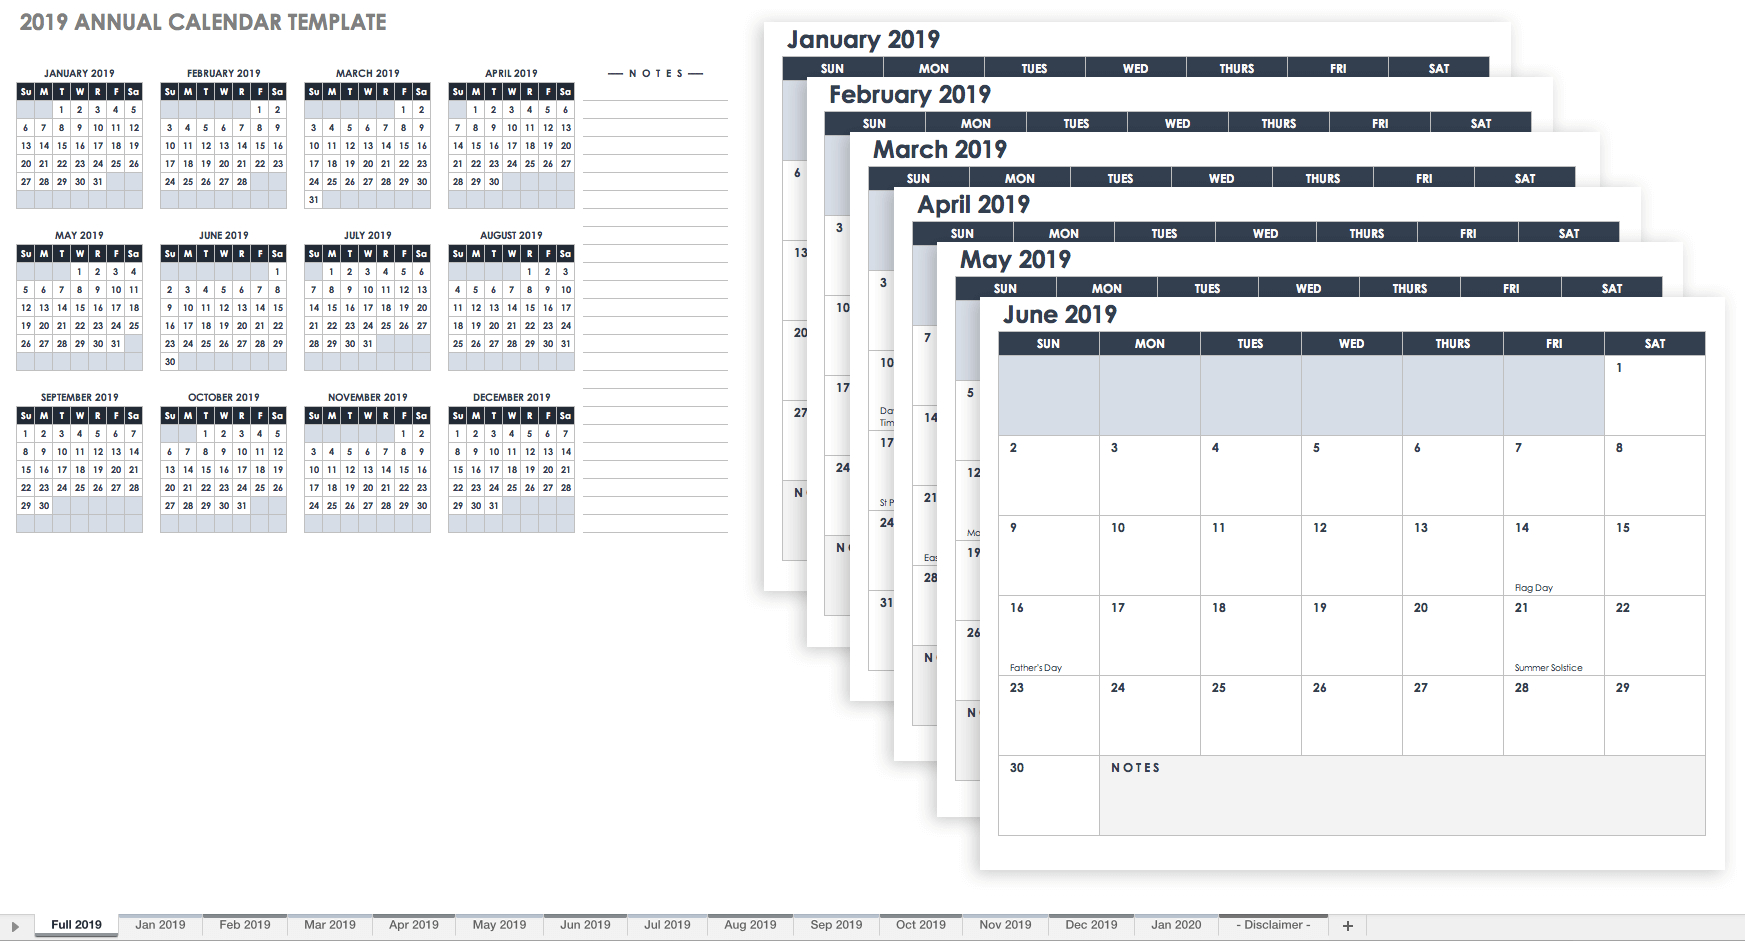 15 Free Monthly Calendar Templates | Smartsheet within Blank Monthly Calendars To Print